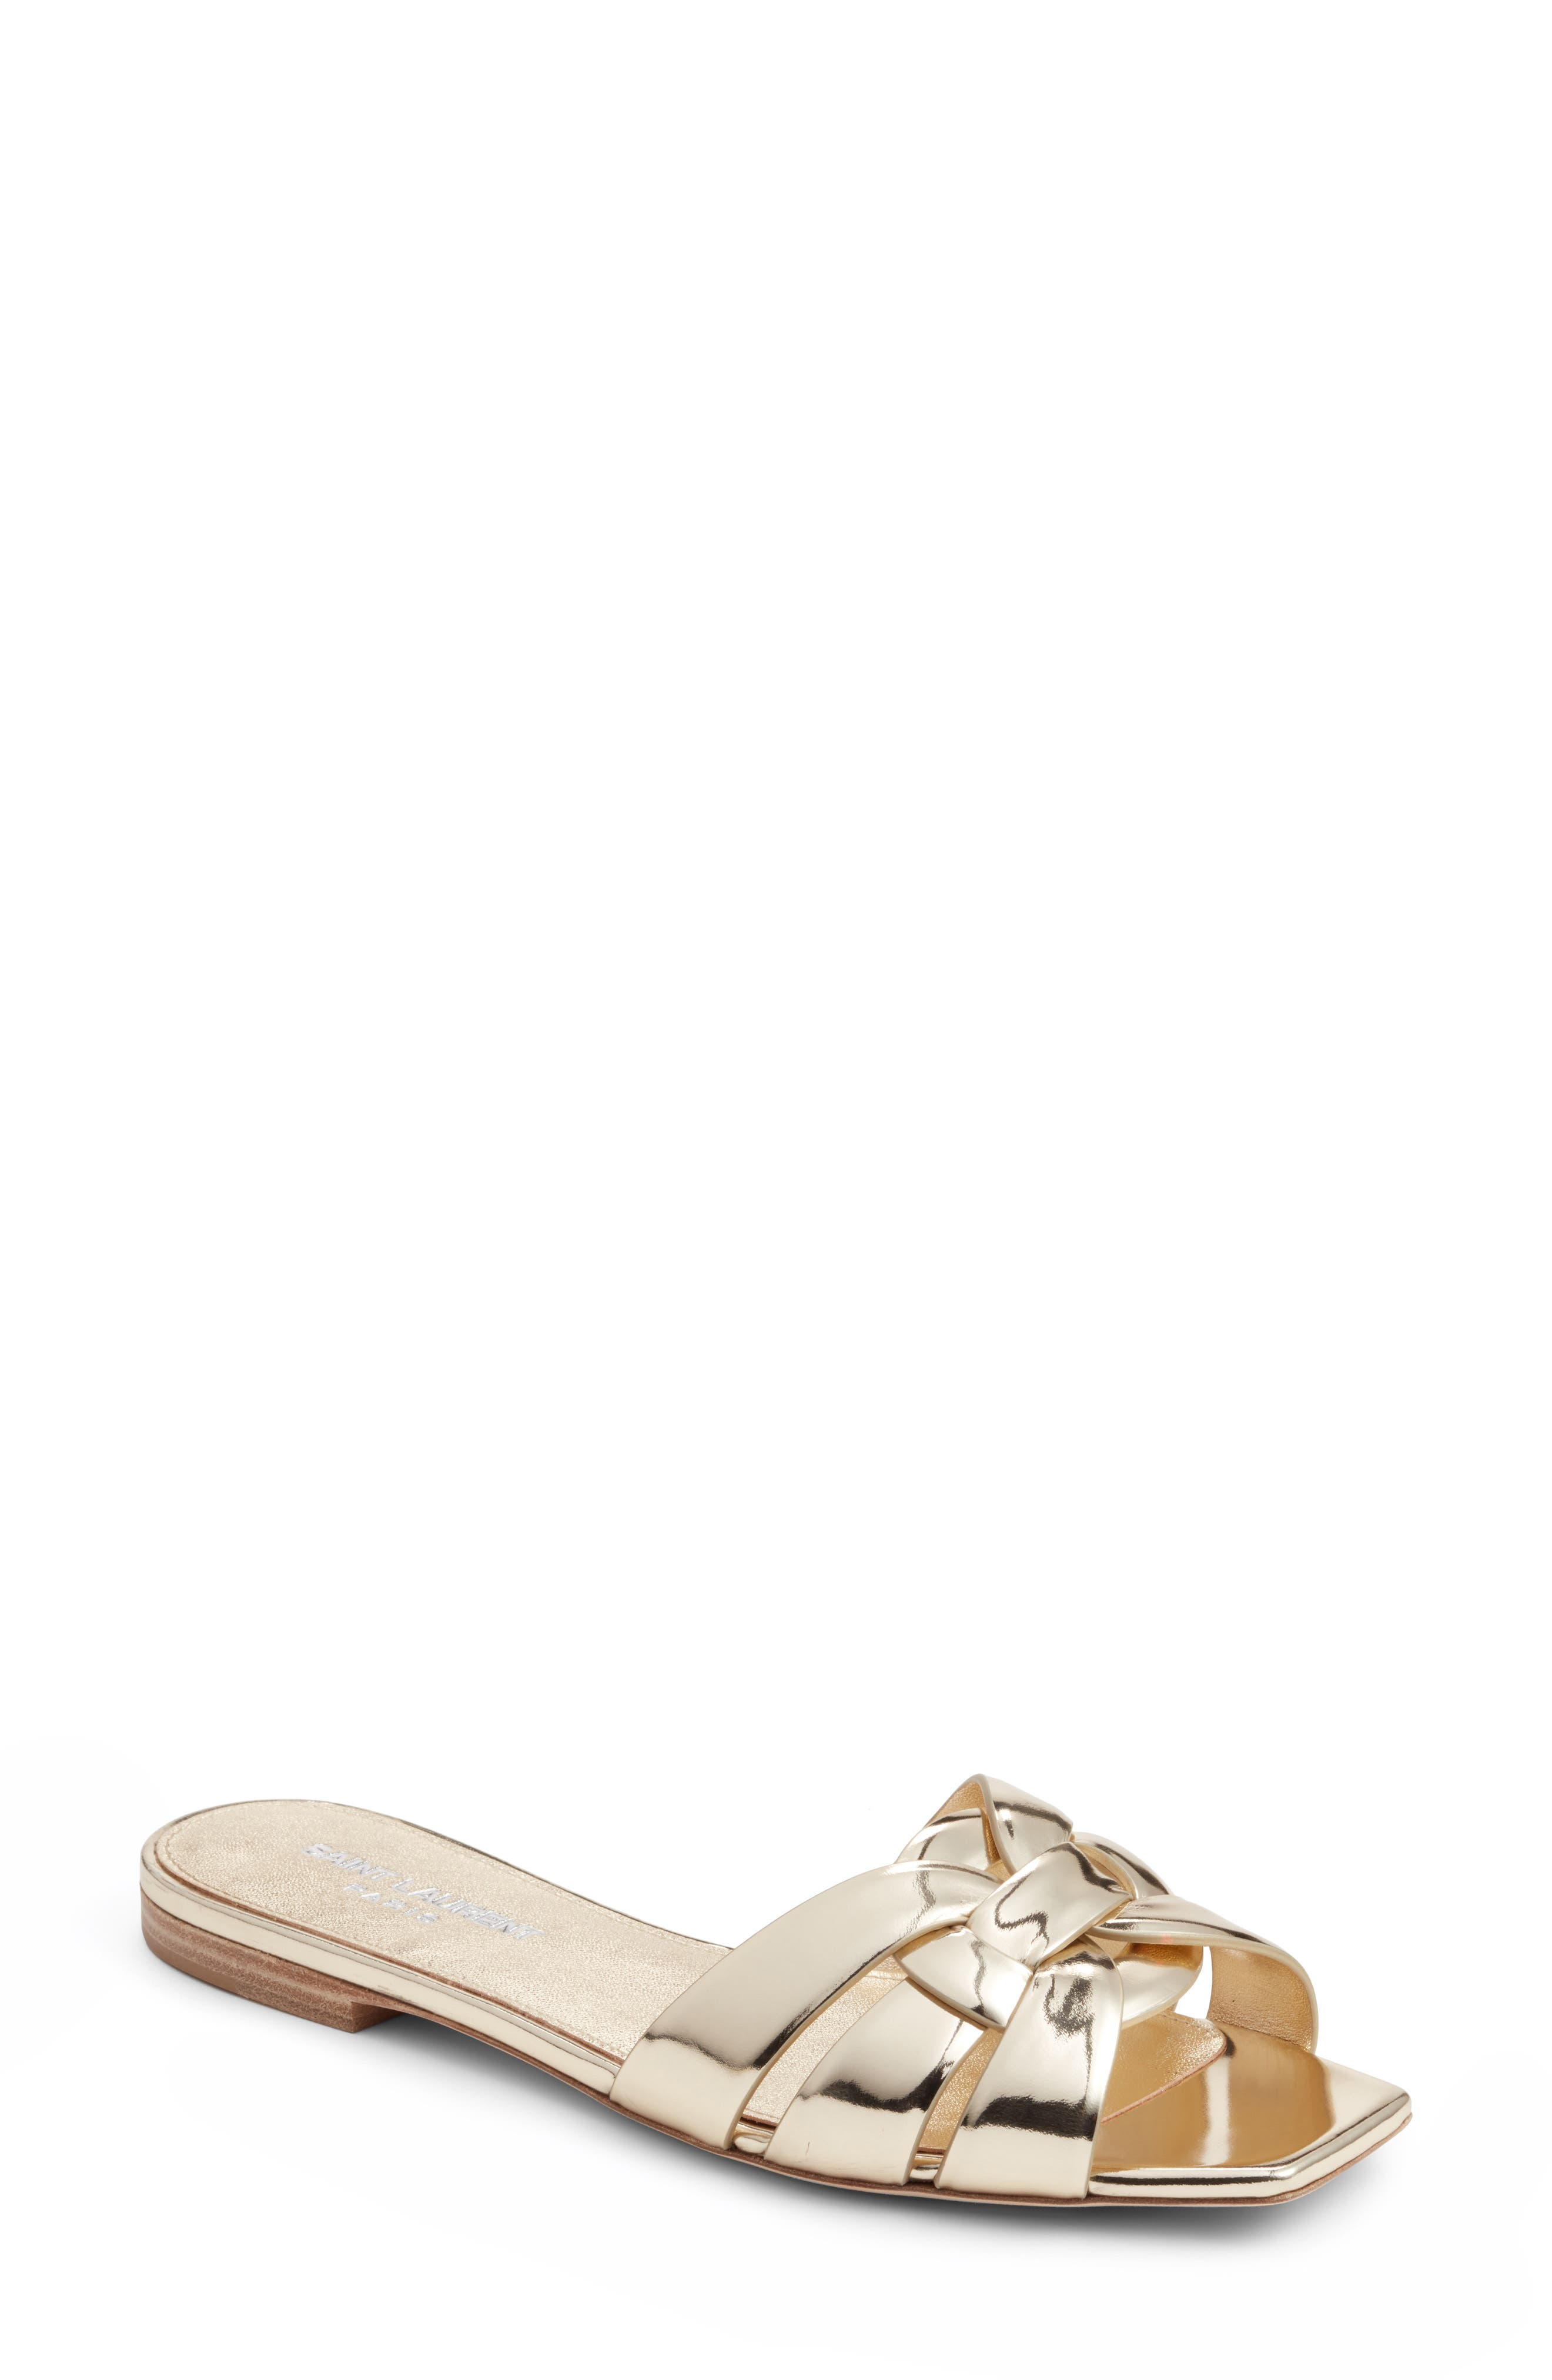 Tribute Slide Sandal,                         Main,                         color, Metallic Gold